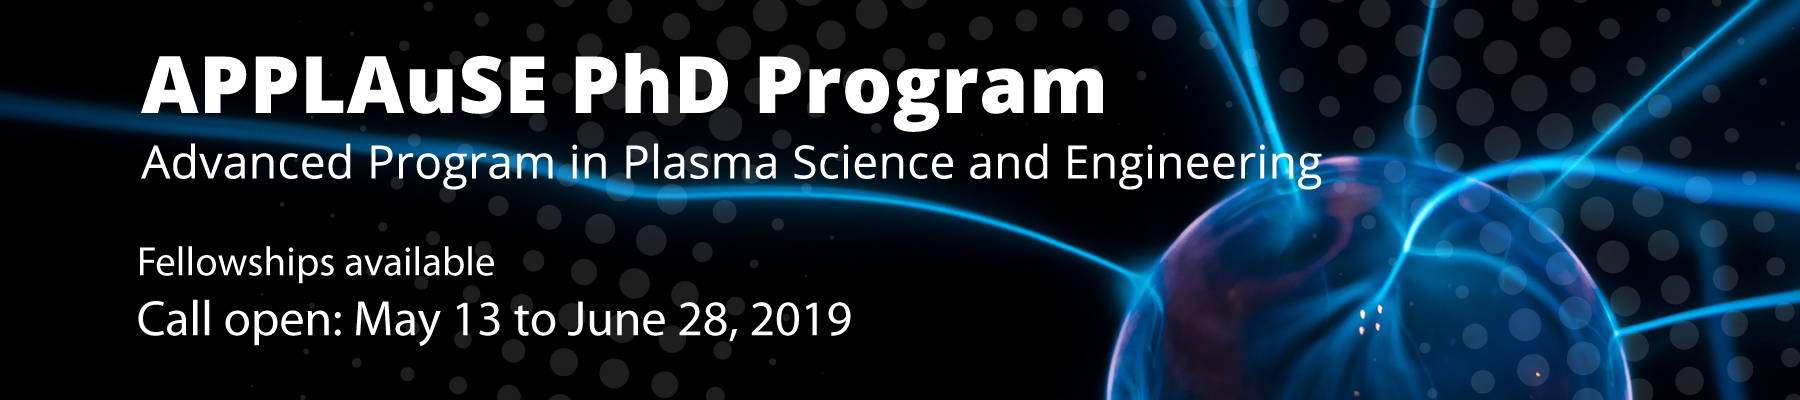 PhD Advanced Program in Plasma Science and Engineering - Call for applications in May 2019